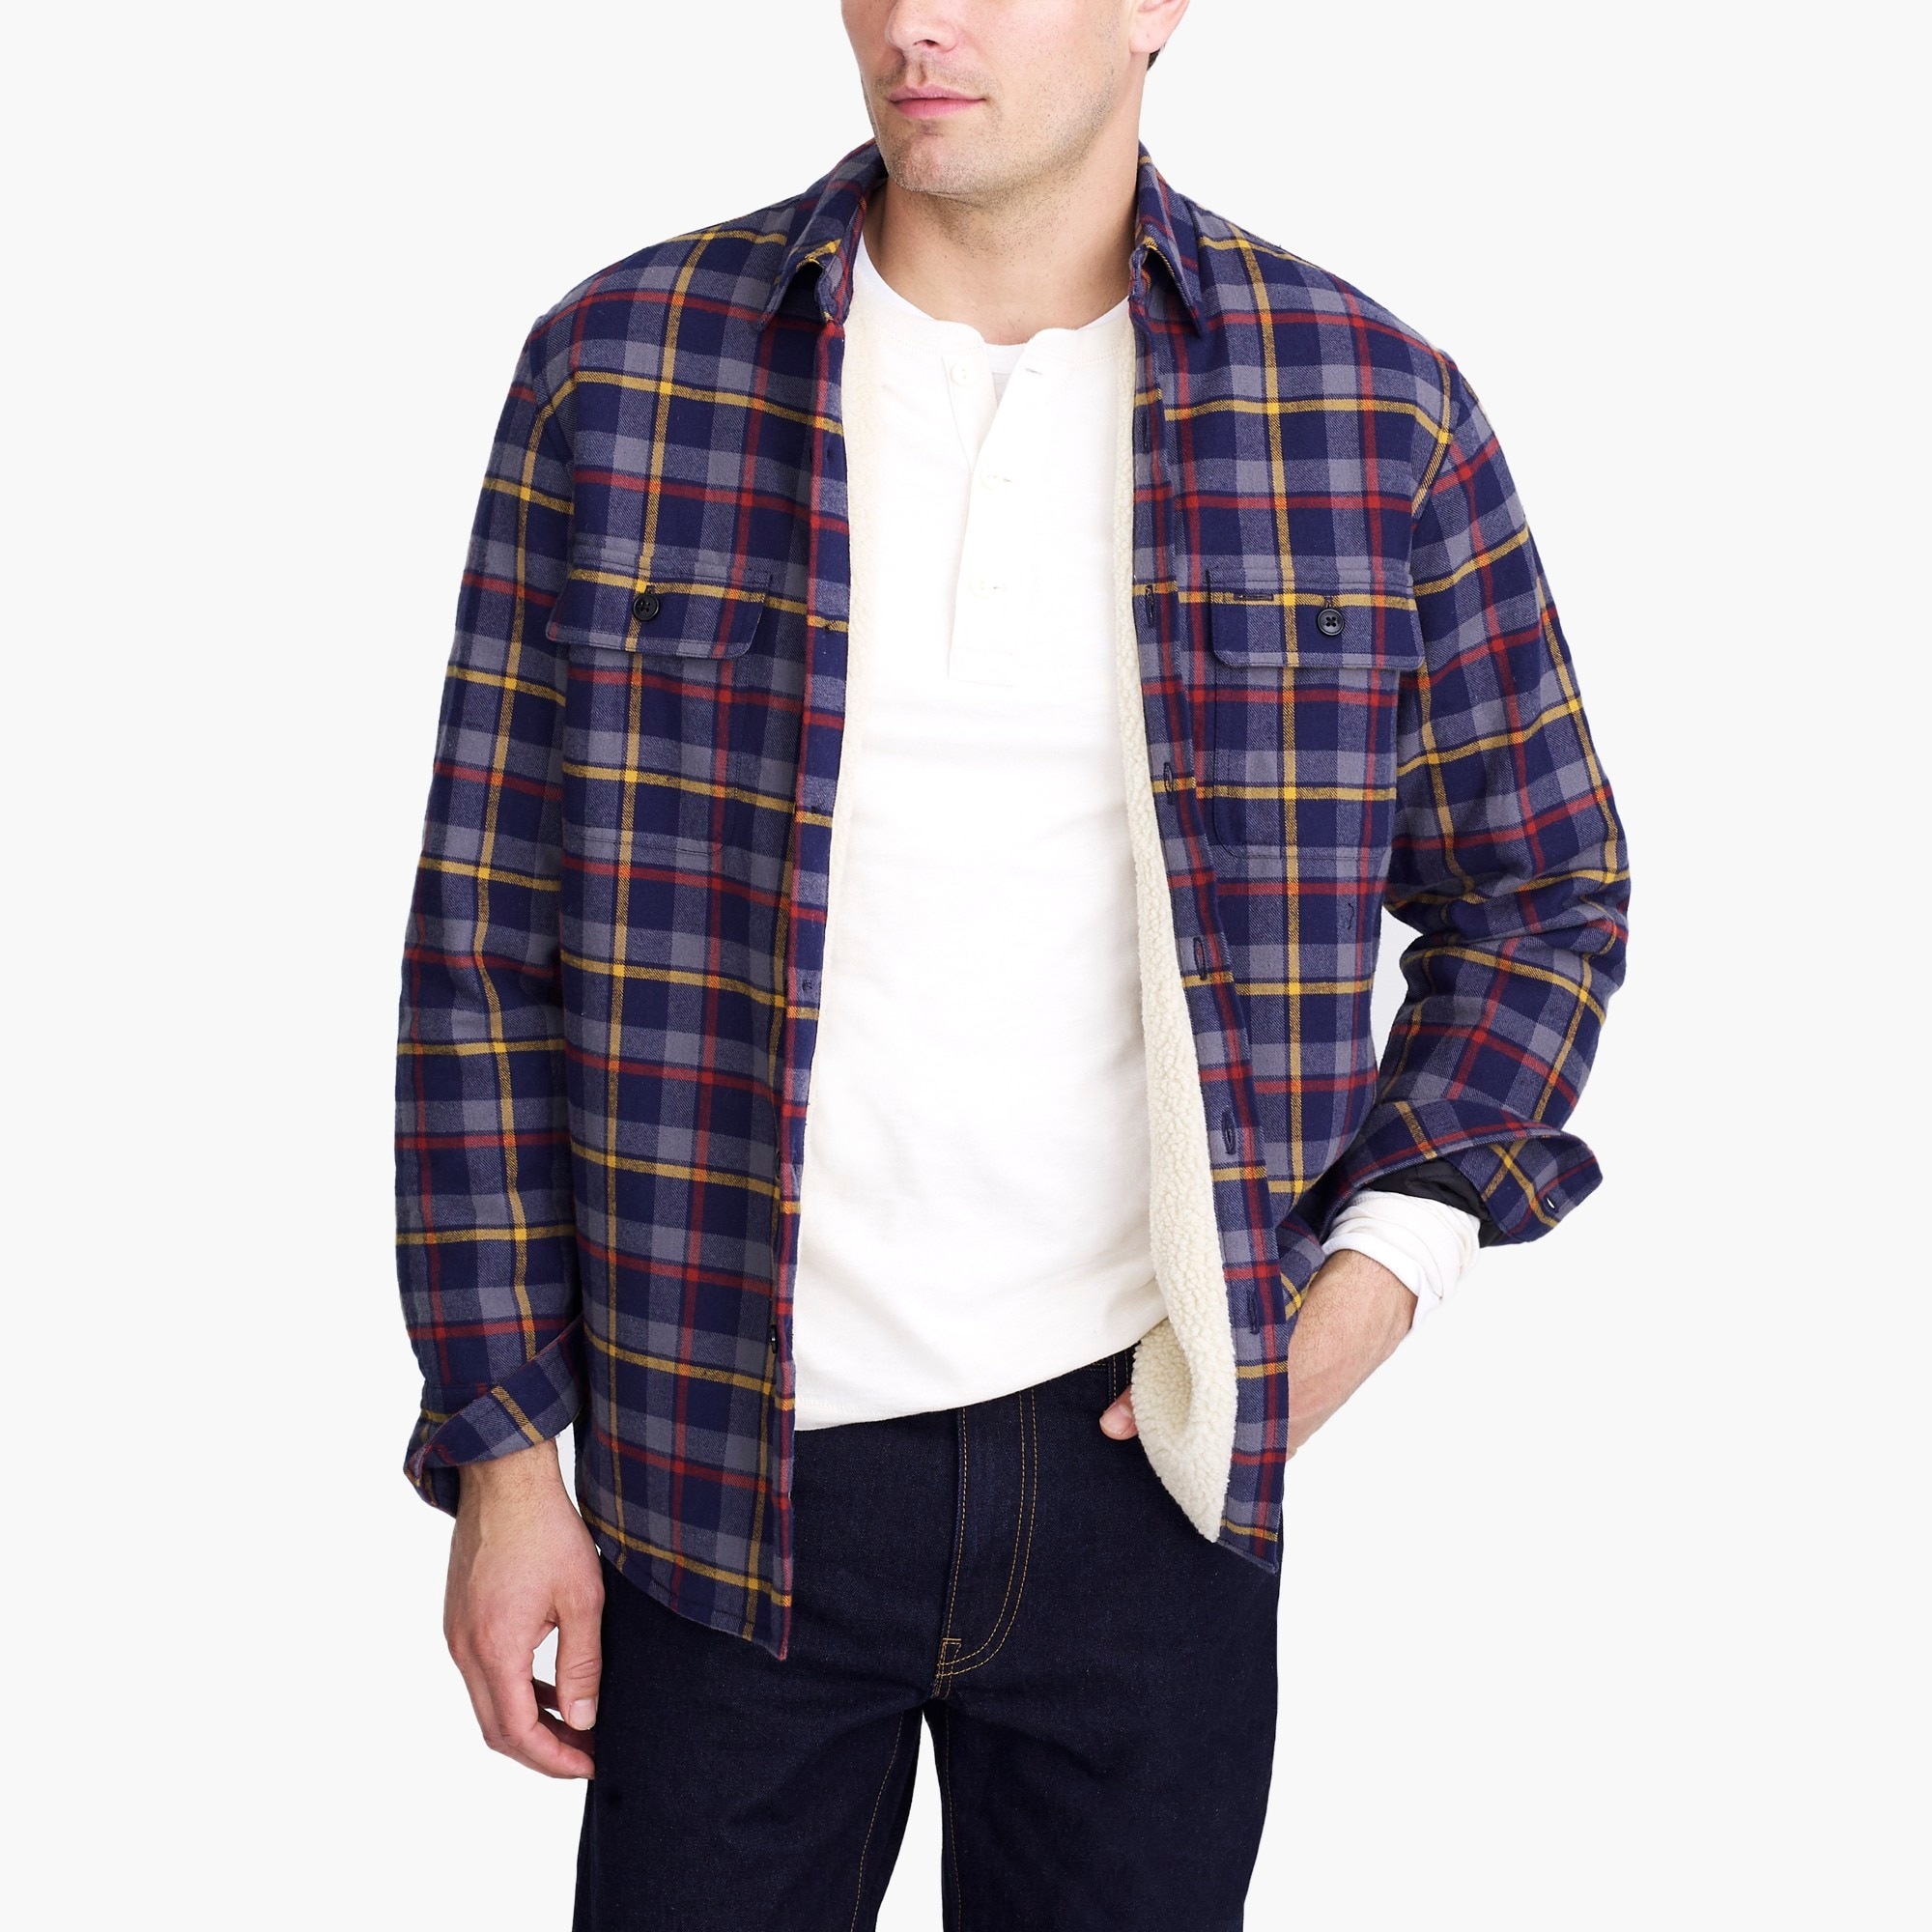 sherpa-lined flannel jacket : factorymen jackets